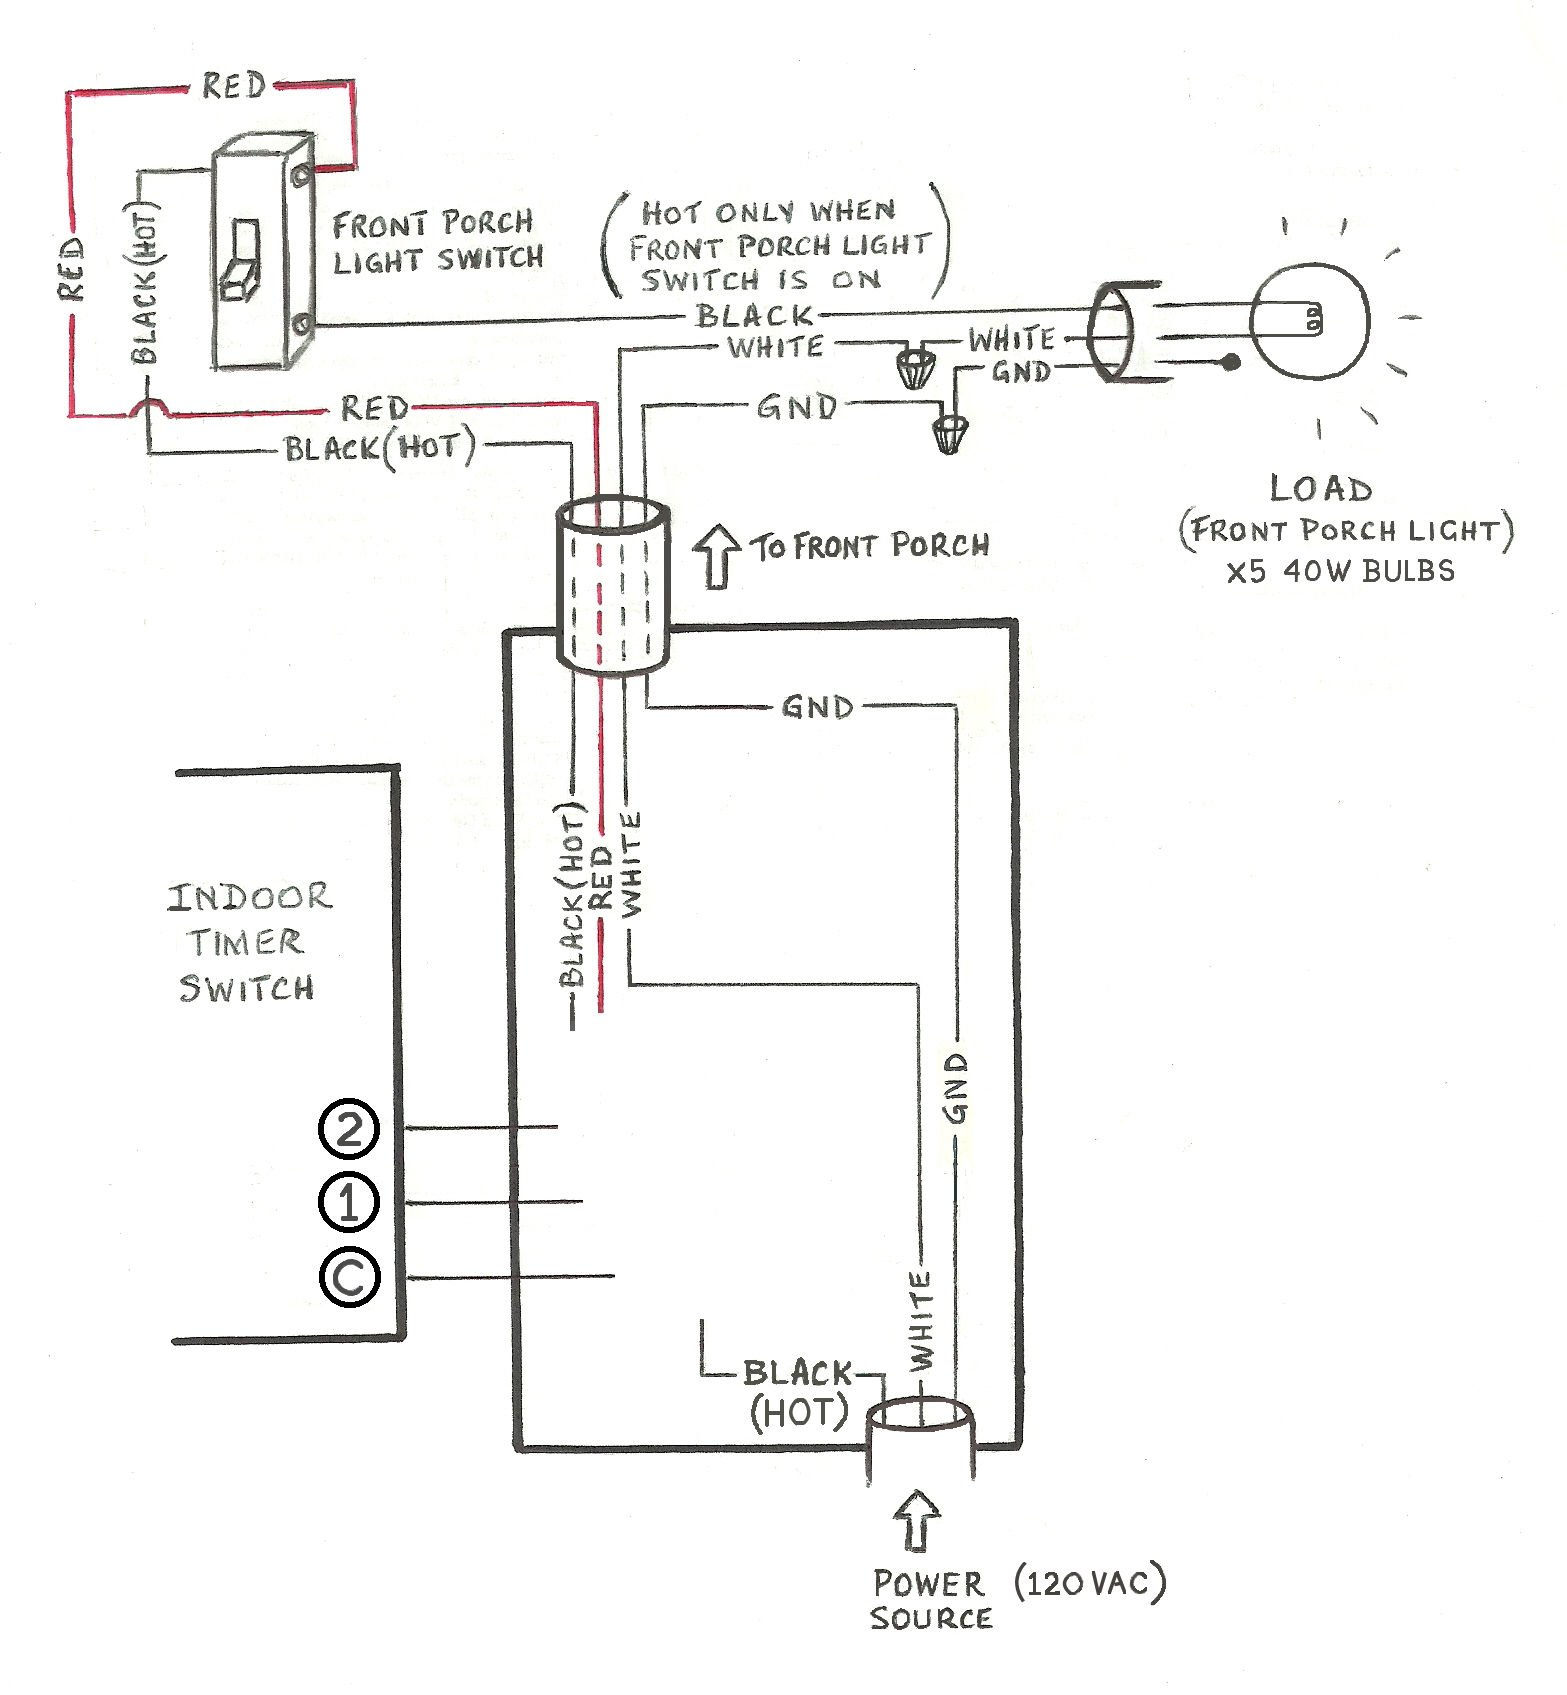 hight resolution of leviton 3 way light switch wiring diagram free picture wiring wiring diagram for outlet switch combo moreover wiring a light switch